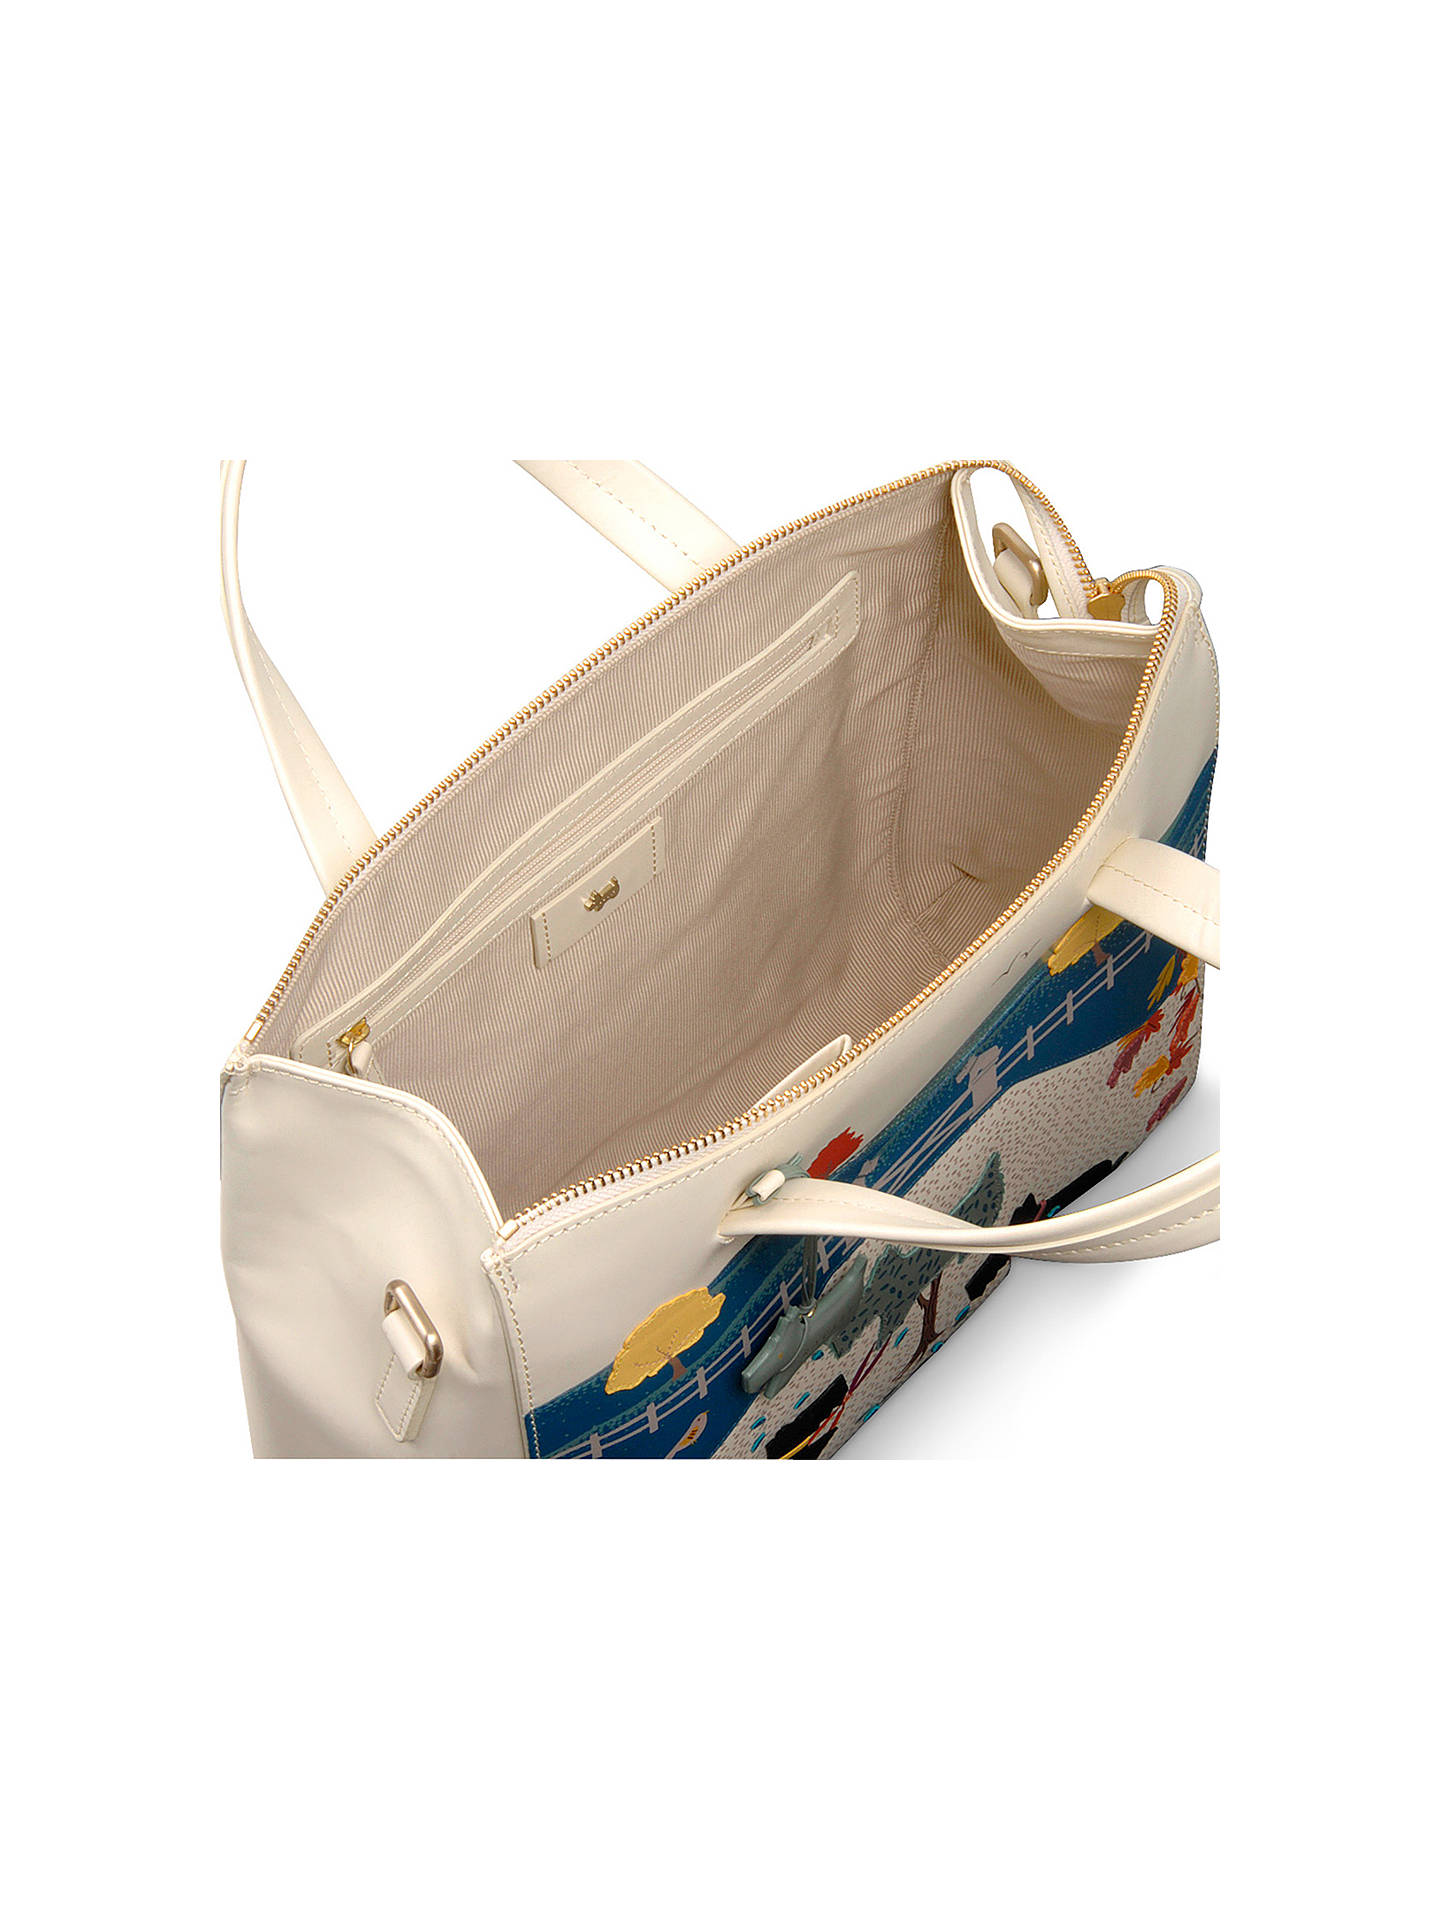 Buy Radley Large Multiway Leather Grab Bag, Ivory Online at johnlewis.com